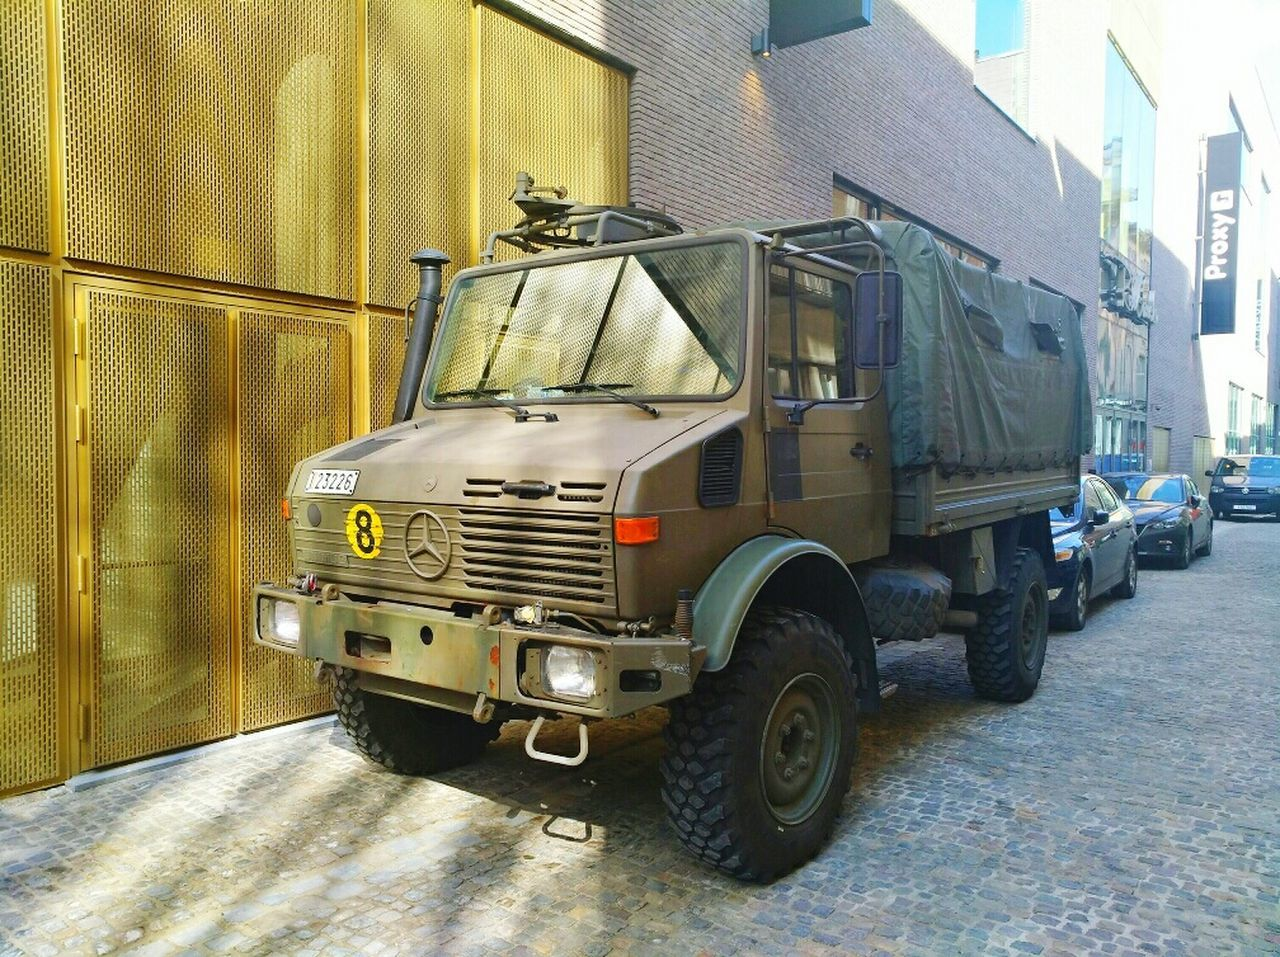 City Built Structure Transportation Outdoors No People Day Wallonie Green Color Belgium. Belgique. Belgie. Belgien. Etc. Army Army Life Army National Guard BELGIUM ARMÉE Automobile Auto Mercedes Green Car Army Navy Army Car Indoors  Charleroi City Low Angle View Marketplace